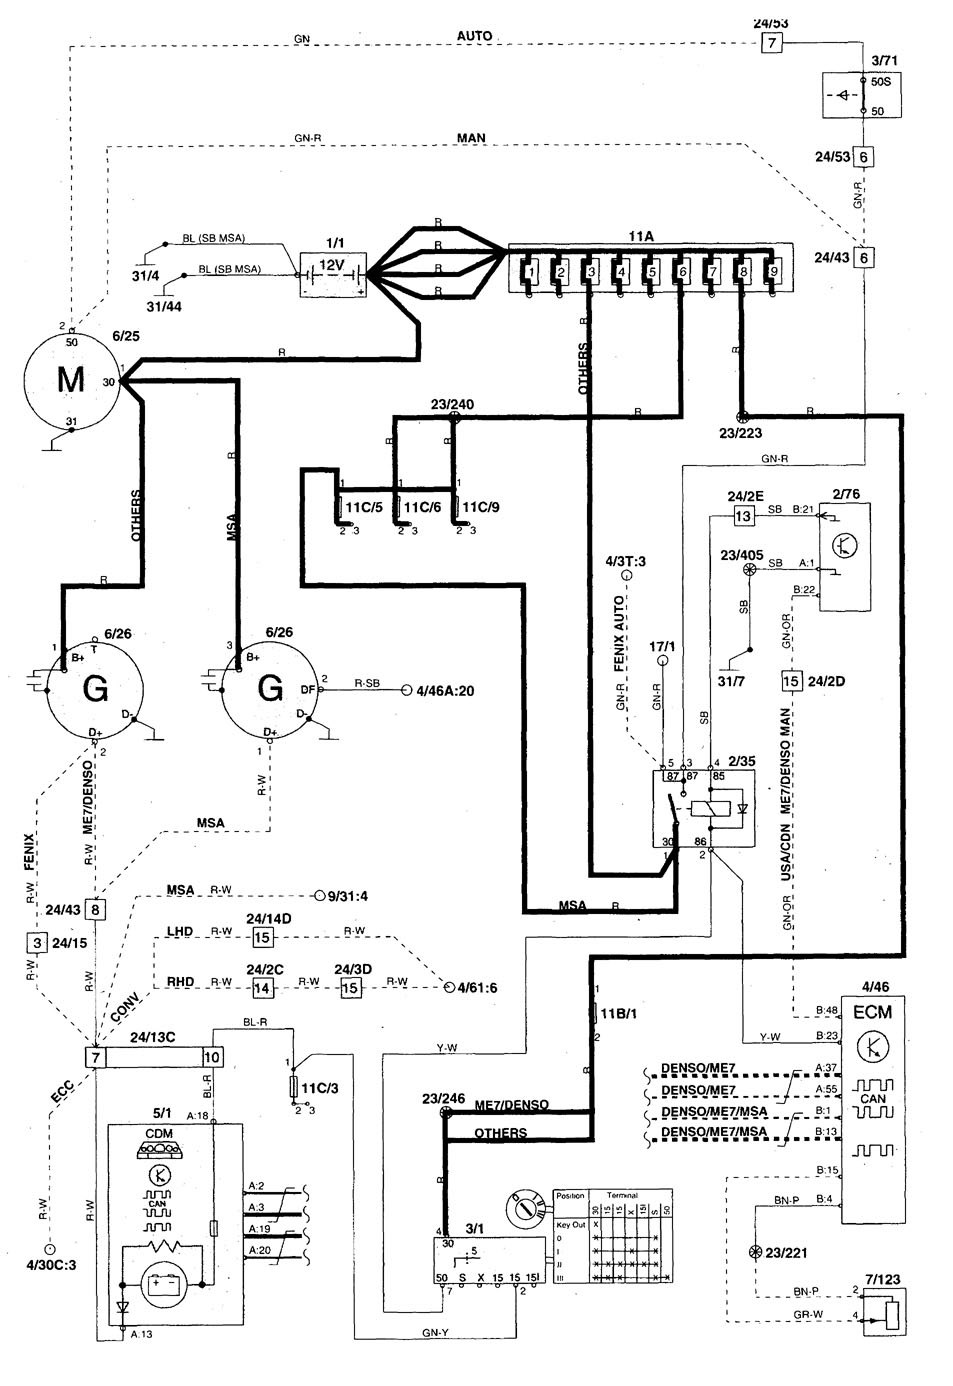 volvo c70 wiring diagram charging system 1 1999 volvo c70 (1999 2004) wiring diagrams charging system c70 wiring diagram at soozxer.org